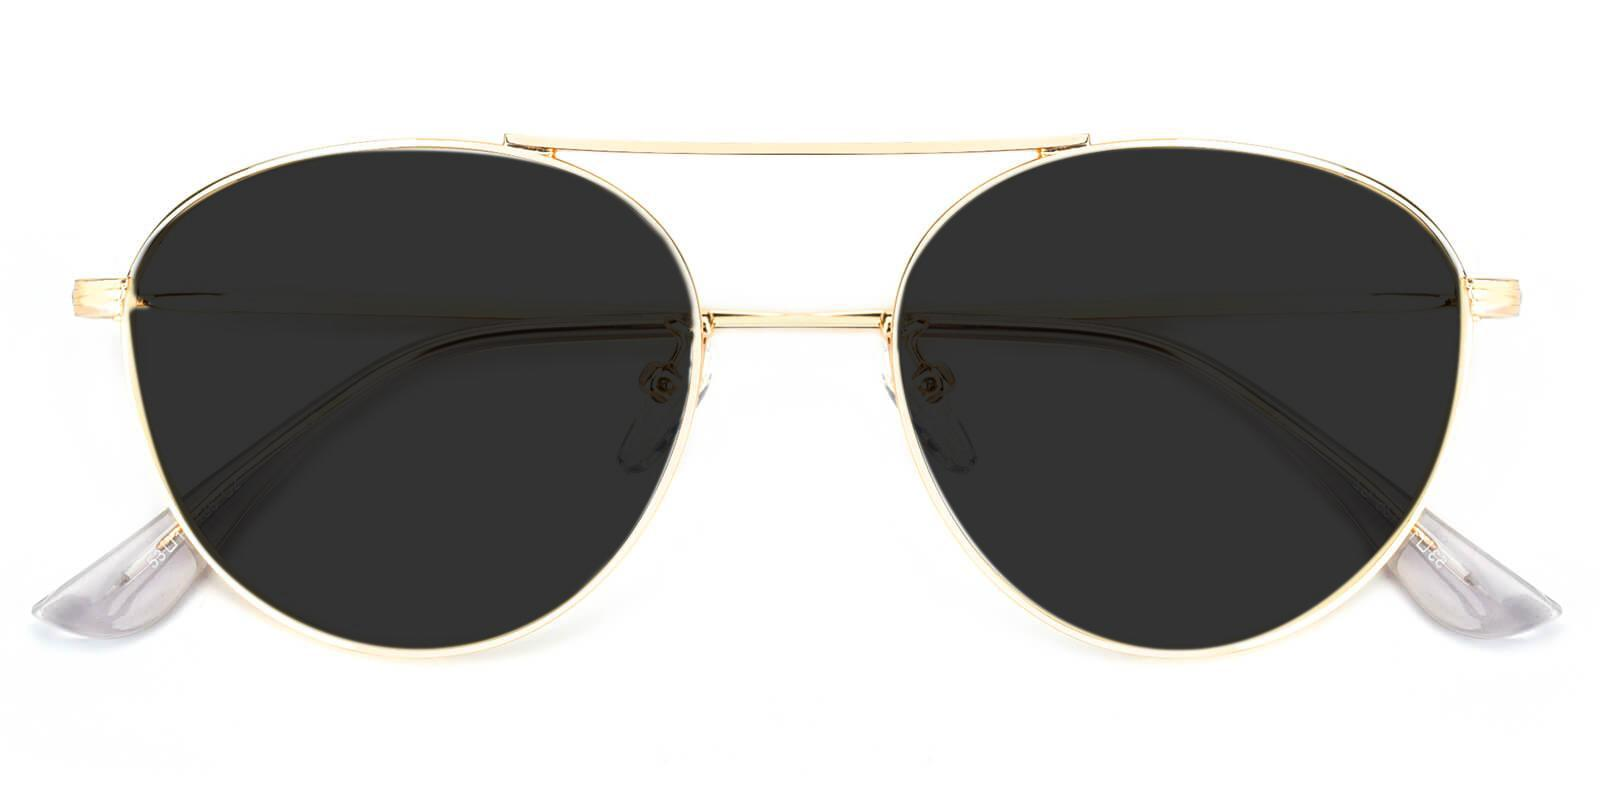 Cupertino Gold Metal NosePads , Sunglasses Frames from ABBE Glasses